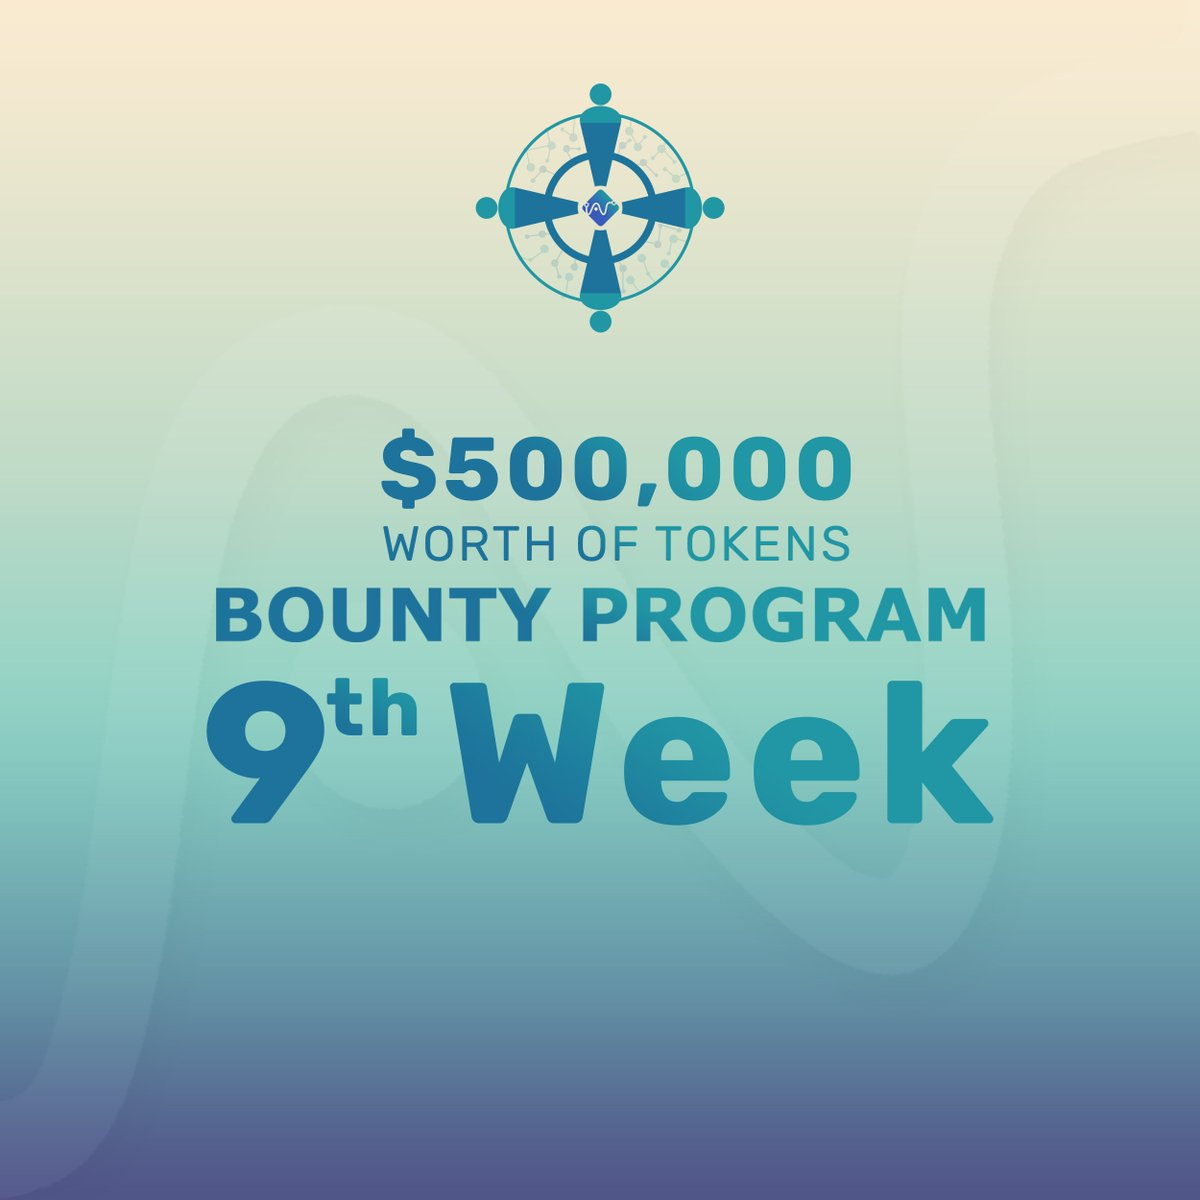 The 9th week of the IA Tokens Bounty Program has now started. Grab your share of the 500,000 USD worth of IATokens! Join the IAT discussions and become a member of the official IAT telegram group at  http:// t.me/iatokens  &nbsp;     #IAT #ICO<br>http://pic.twitter.com/7VmjIrswfT